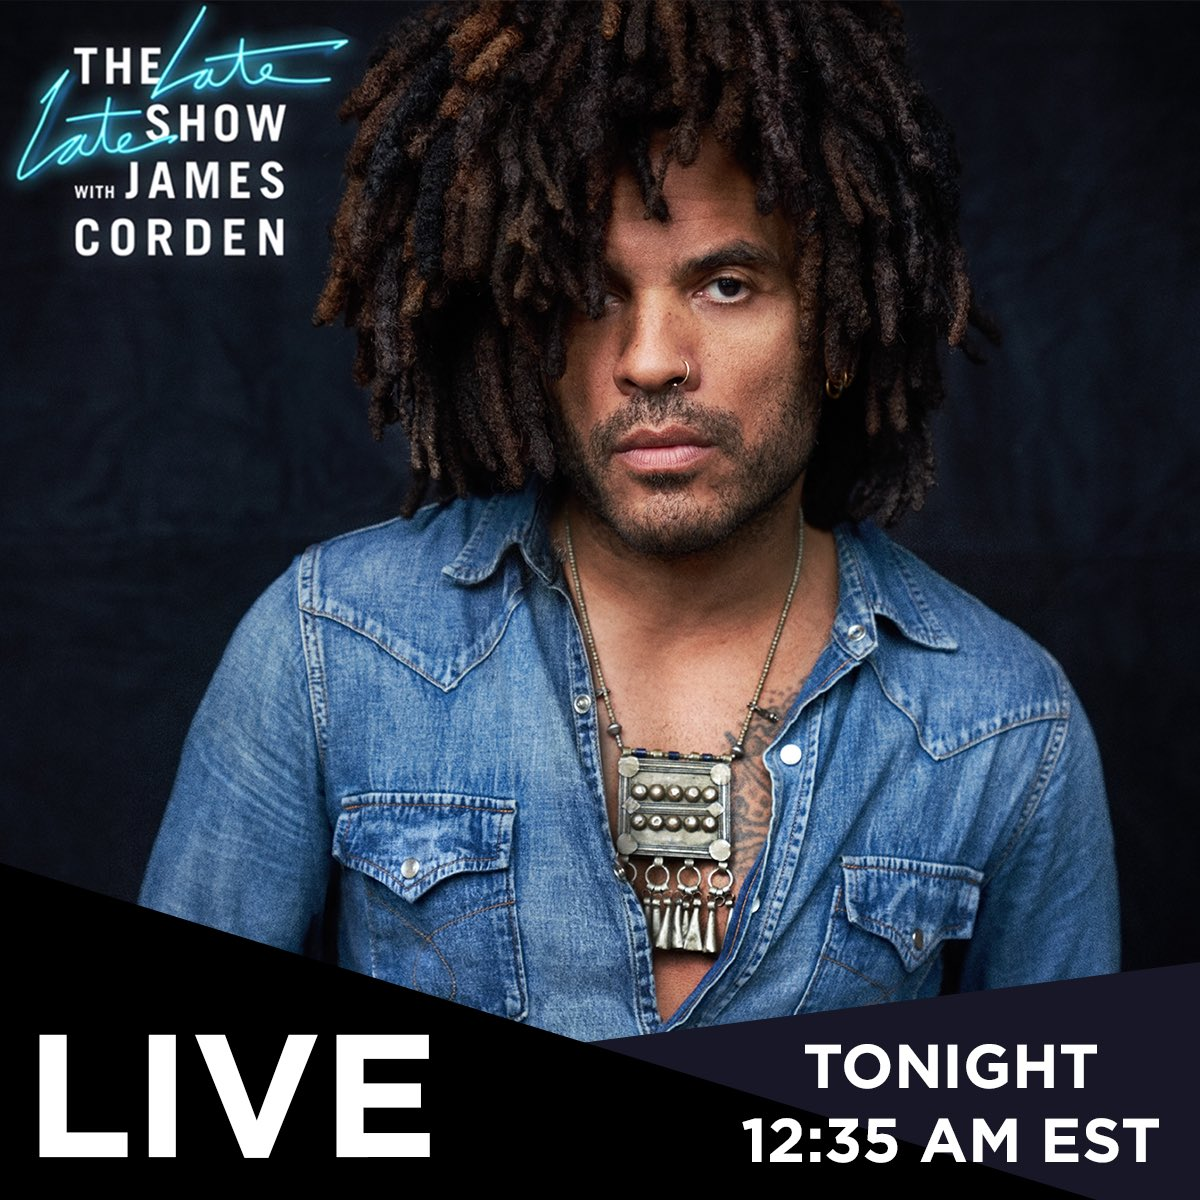 I'll be on the @latelateshow tonight https://t.co/dIDD5Q0Cy0